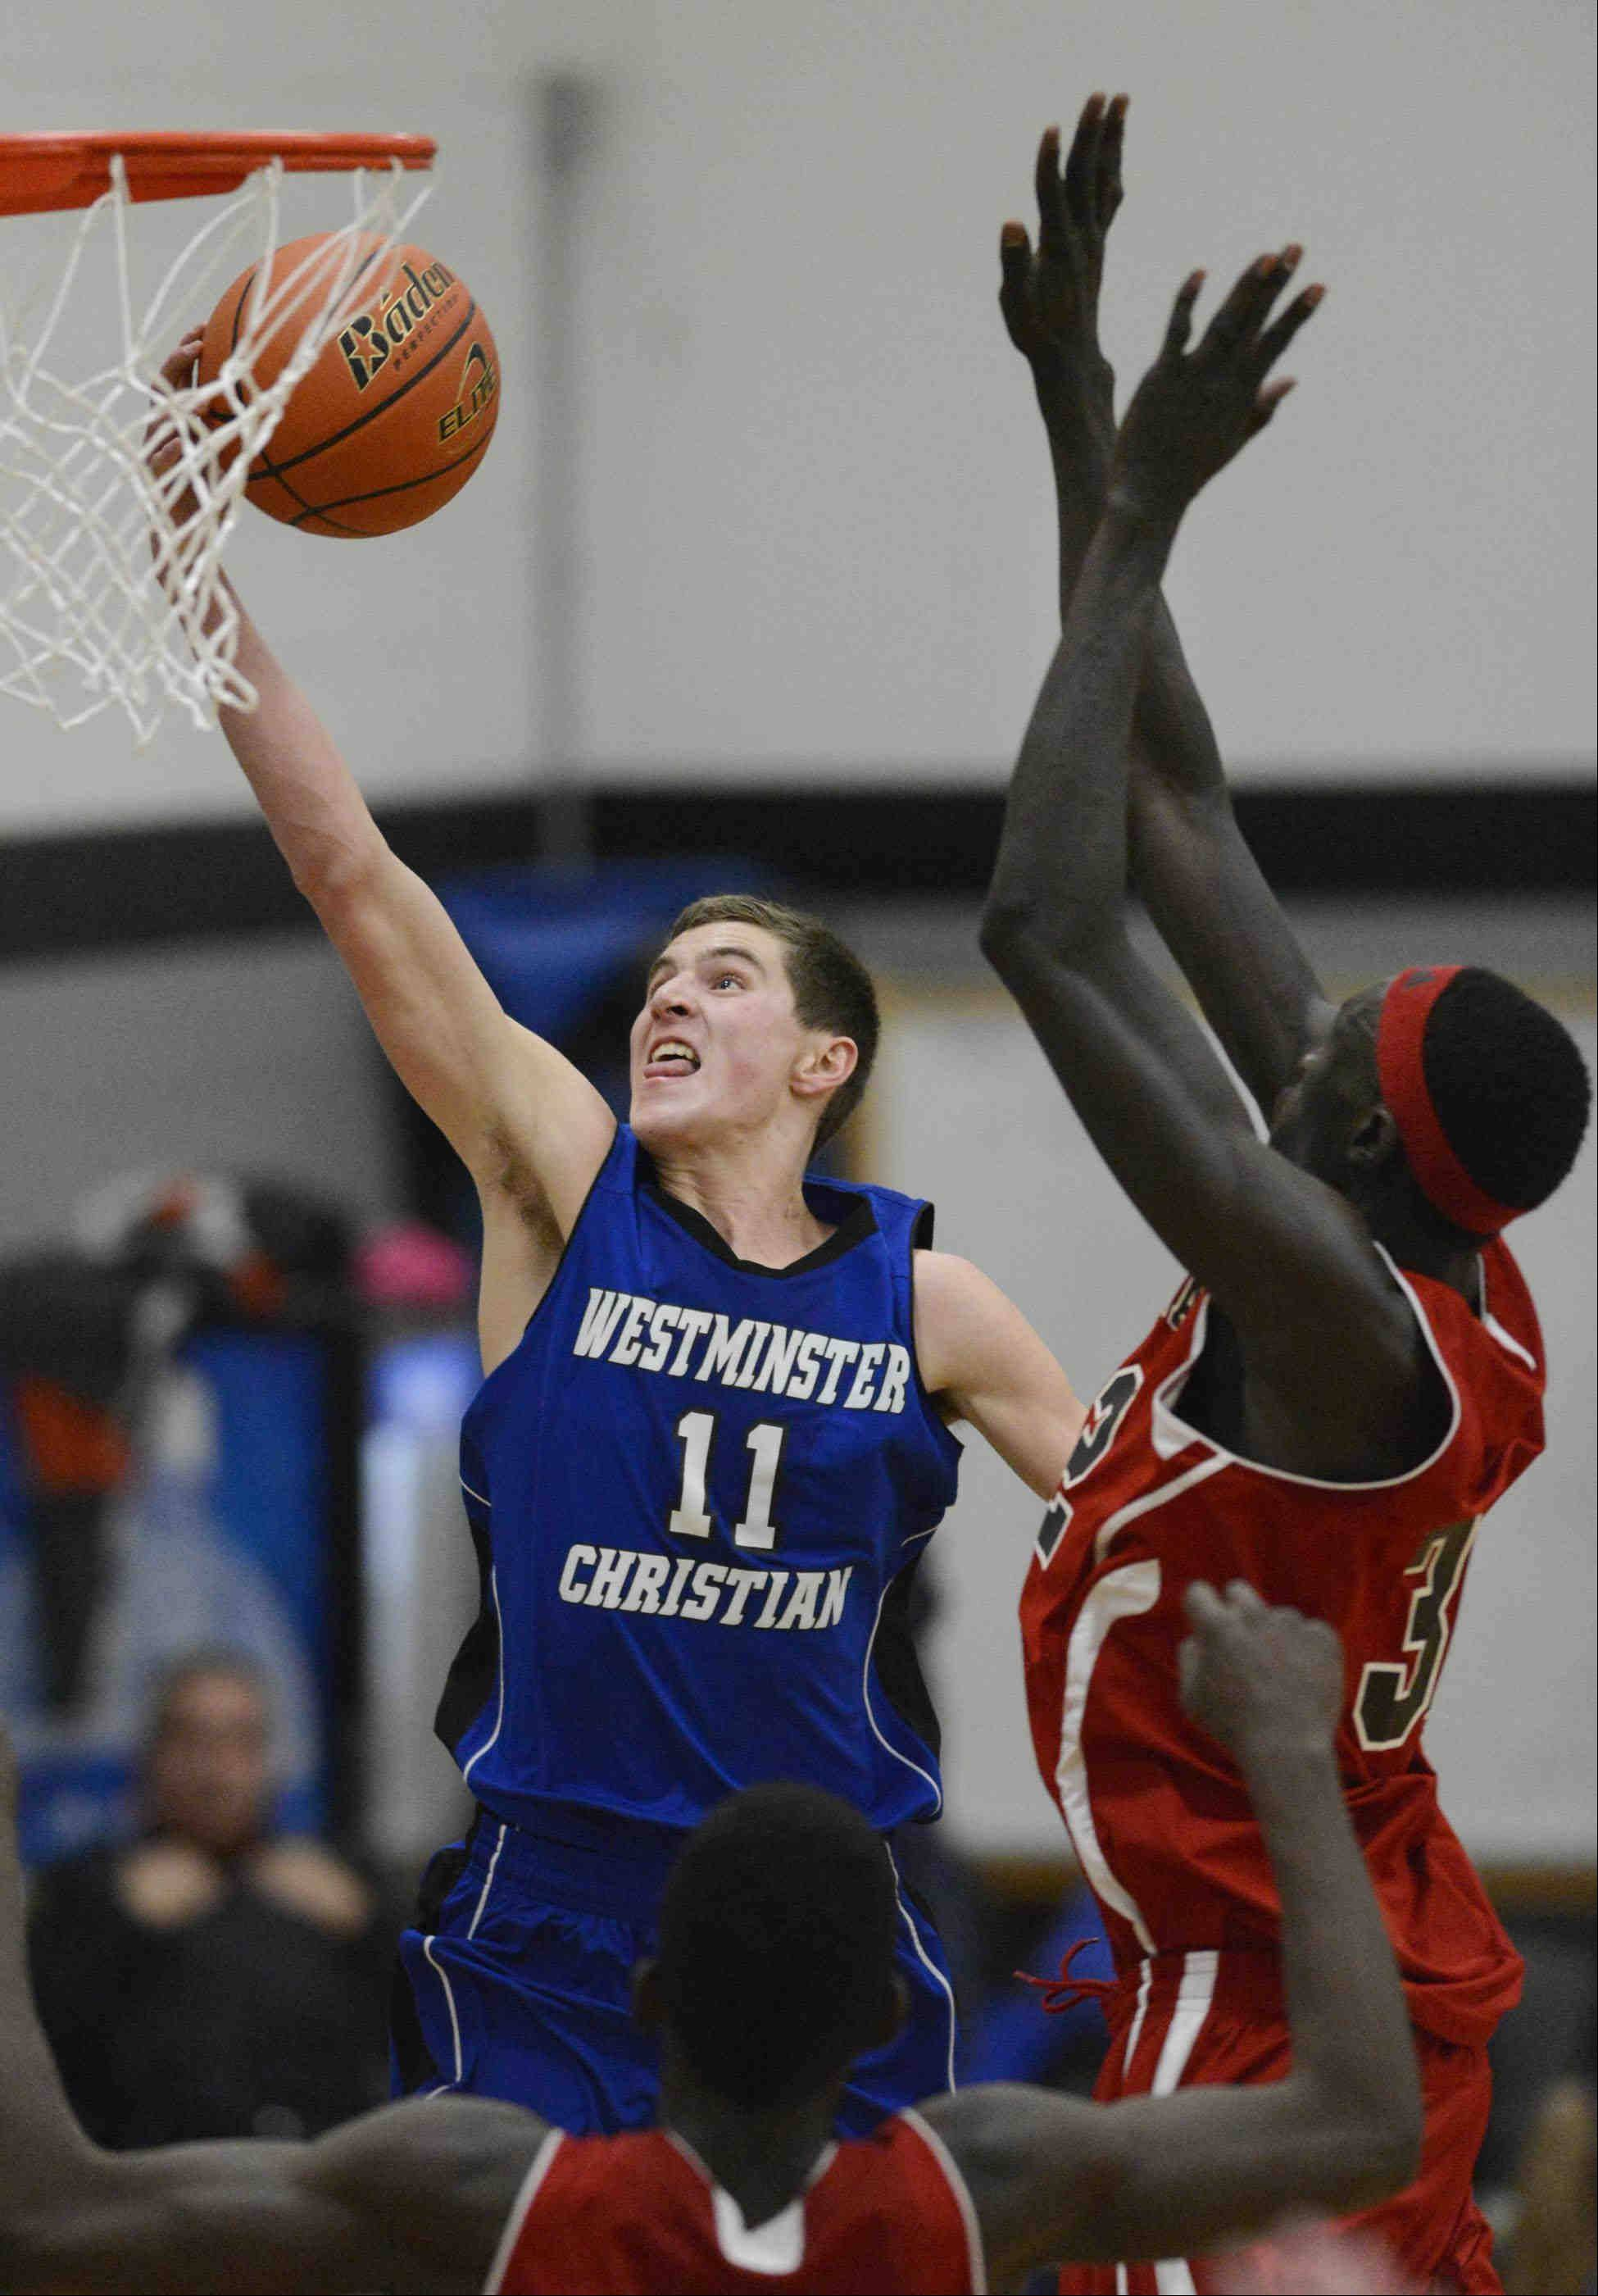 Westminster Christian's Will Woodhouse dries for a layup that is blocked by Mooseheart's Makur Puou Wednesday in Elgin.